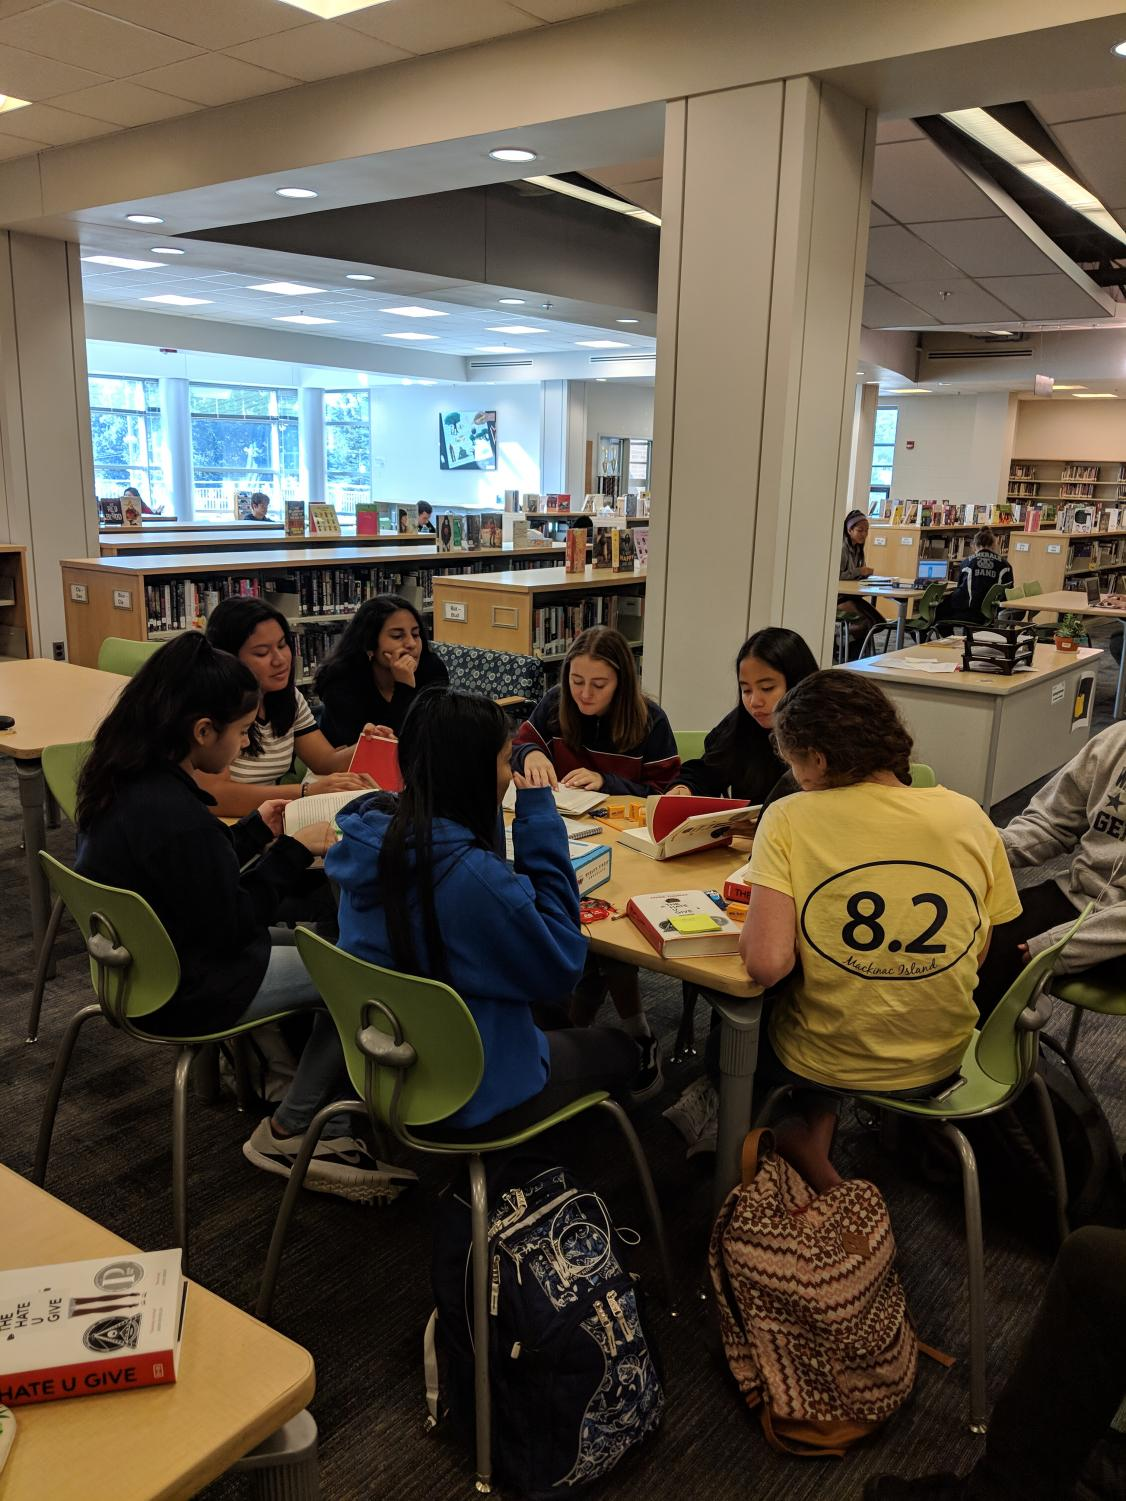 """The school's new book club discusses the book version of """"The Hate U Give"""". The club has met twice already, and plans to meet again on November 8."""